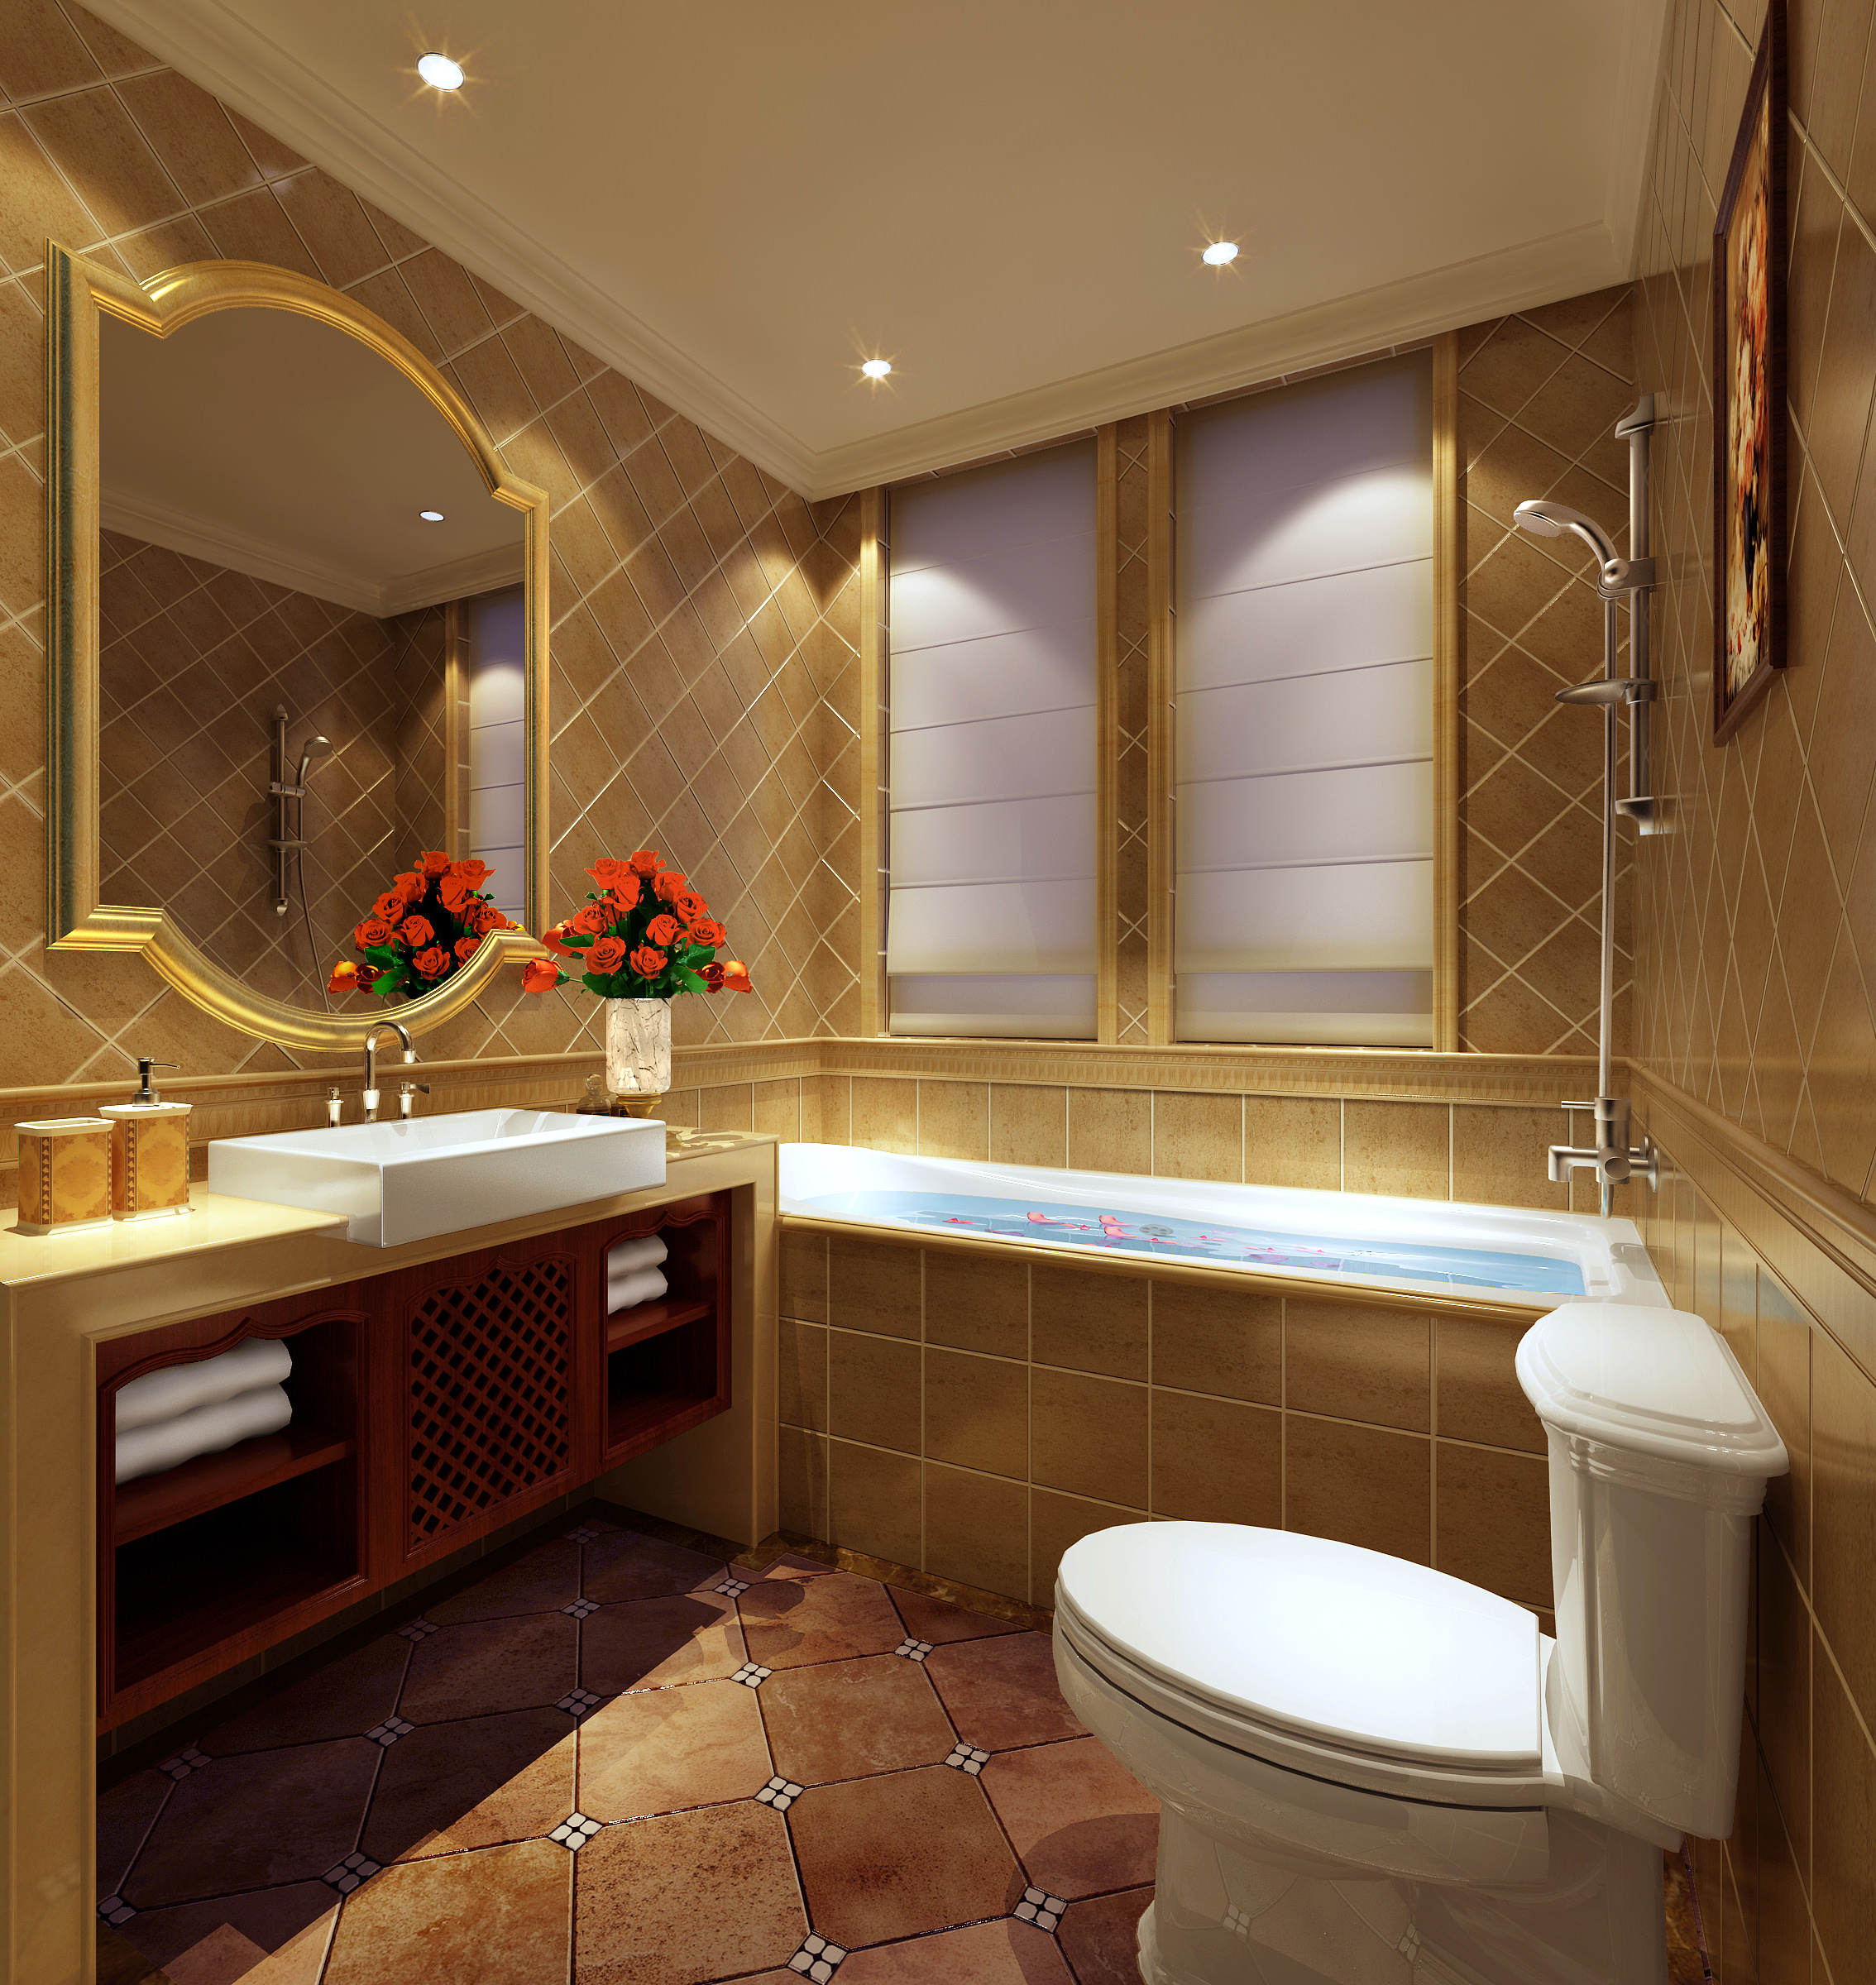 Luxury bathroom 3d model max for 3d decoration models